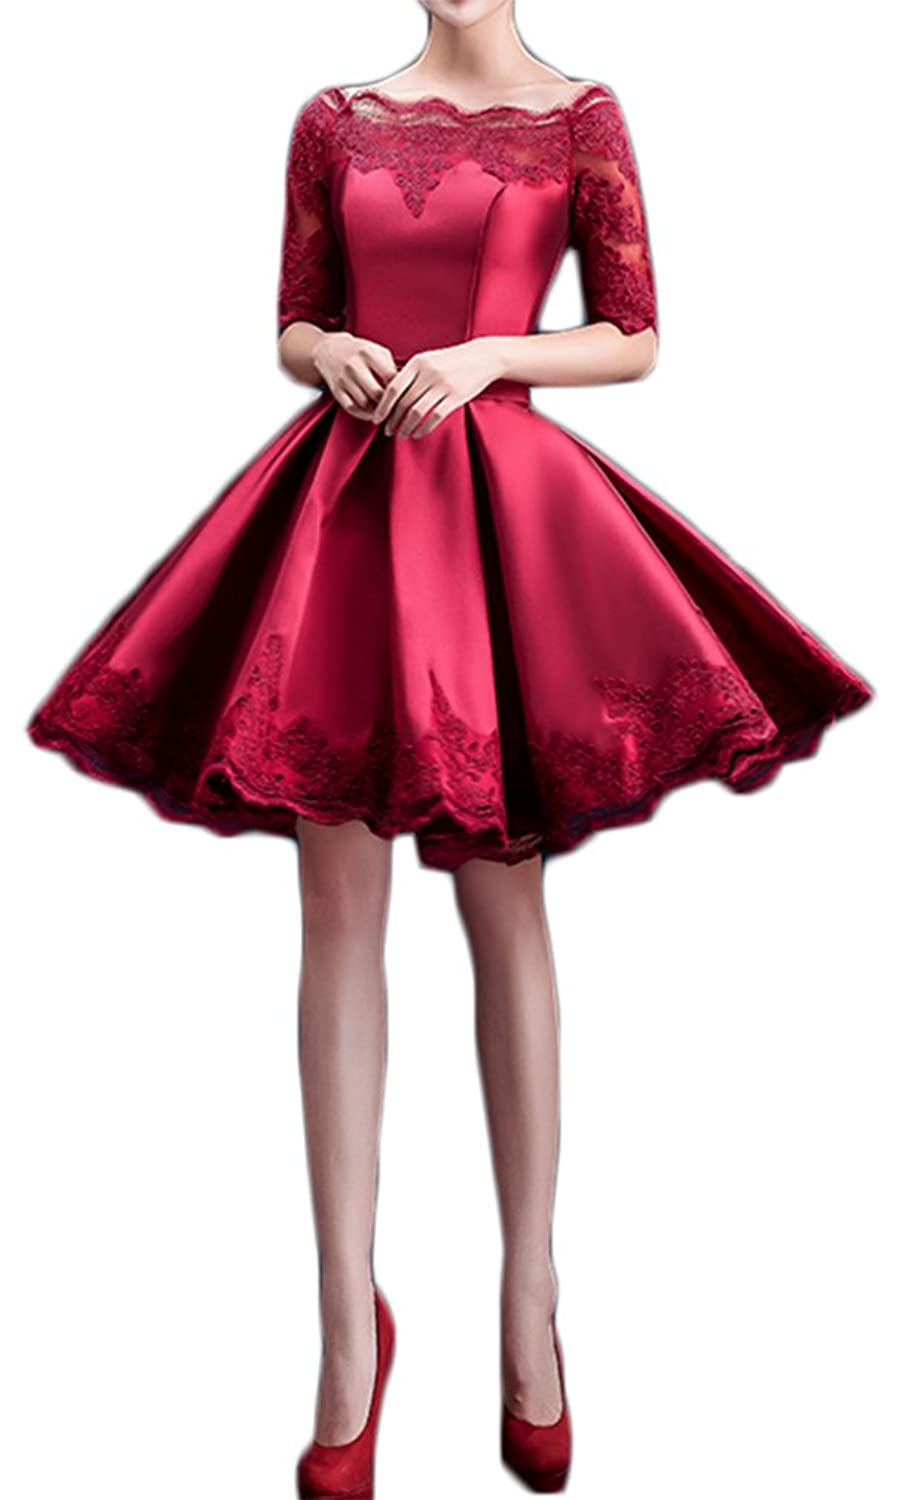 Eudolah Women's Short 3/4 Sleeve Cocktail Lace Embroidery Bridesmaid Dress